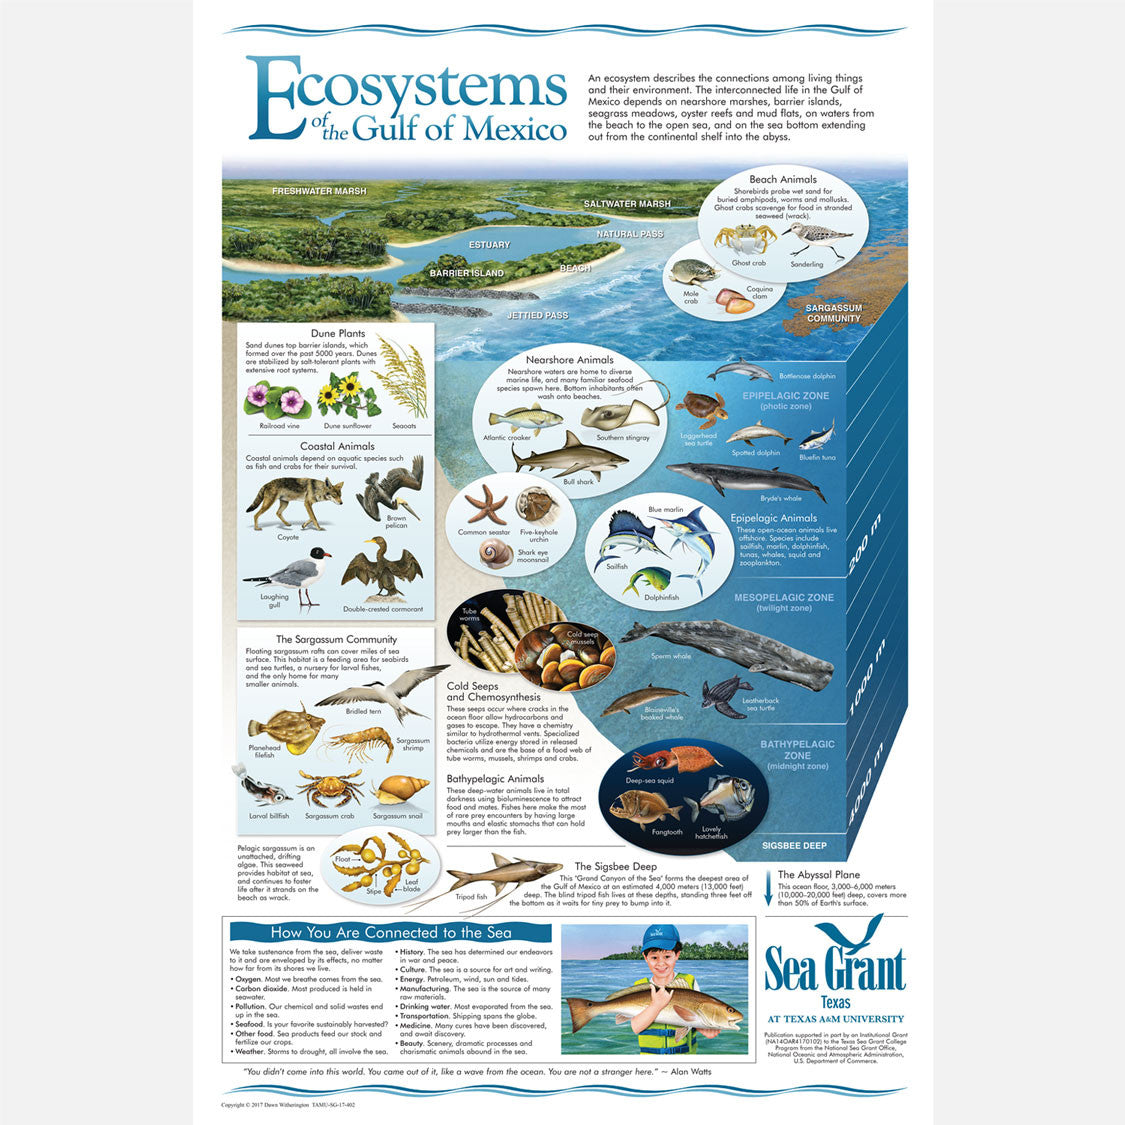 This beautiful poster provides information on the ecosystems of the Gulf of Mexico and how the are connected.